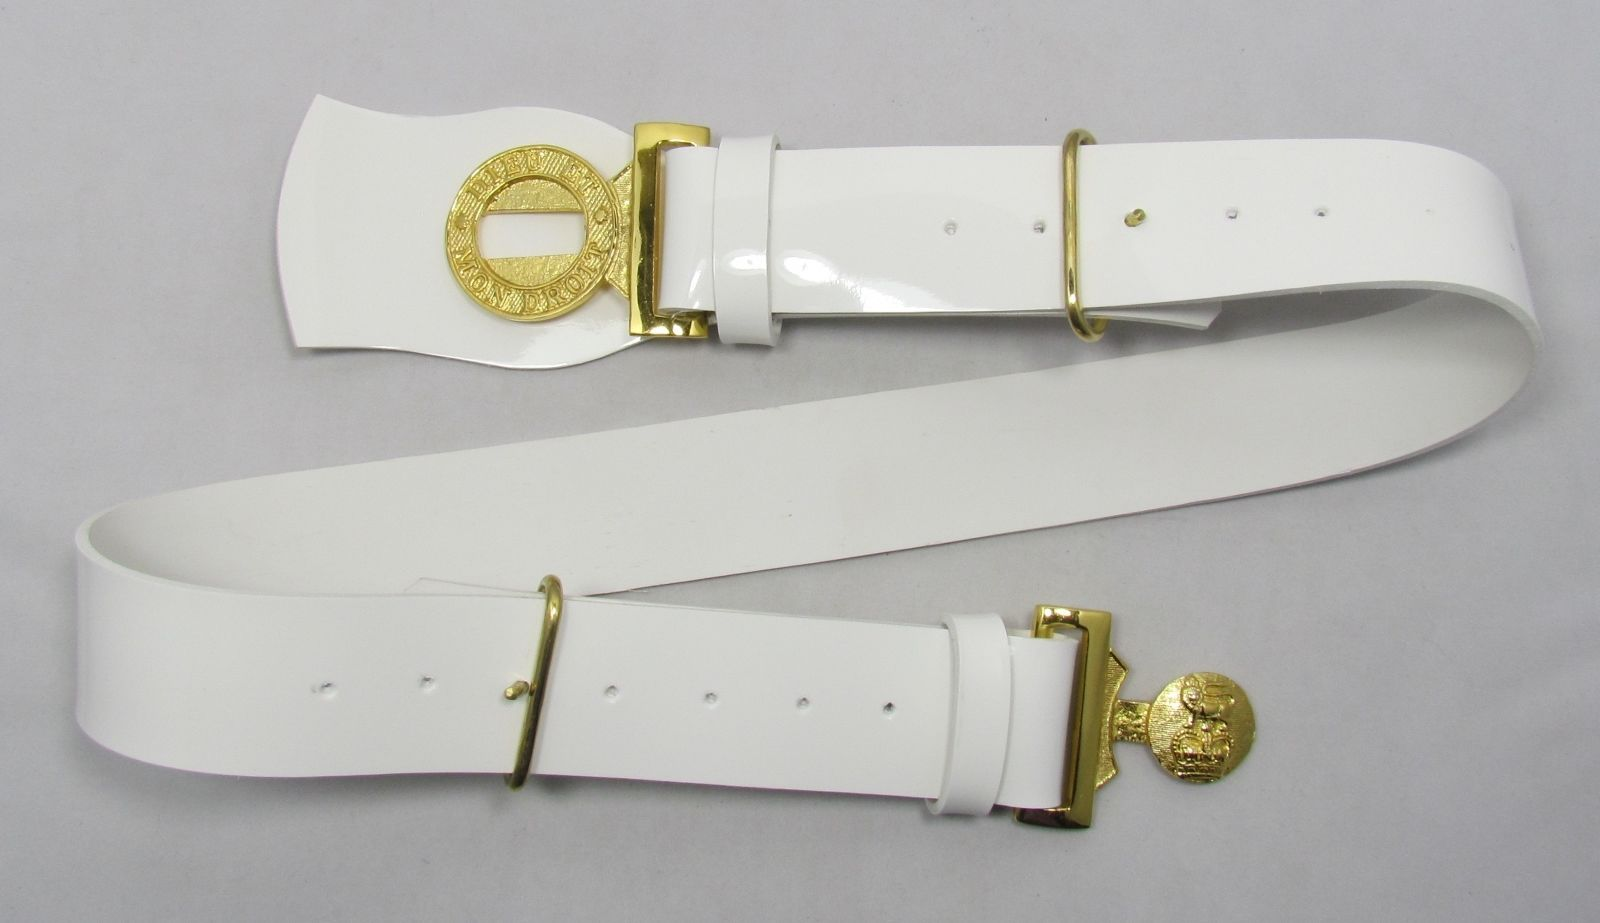 Belt Parade White PVC Plastic Gold Locket Buckle Army Military R1728 88fad575cce